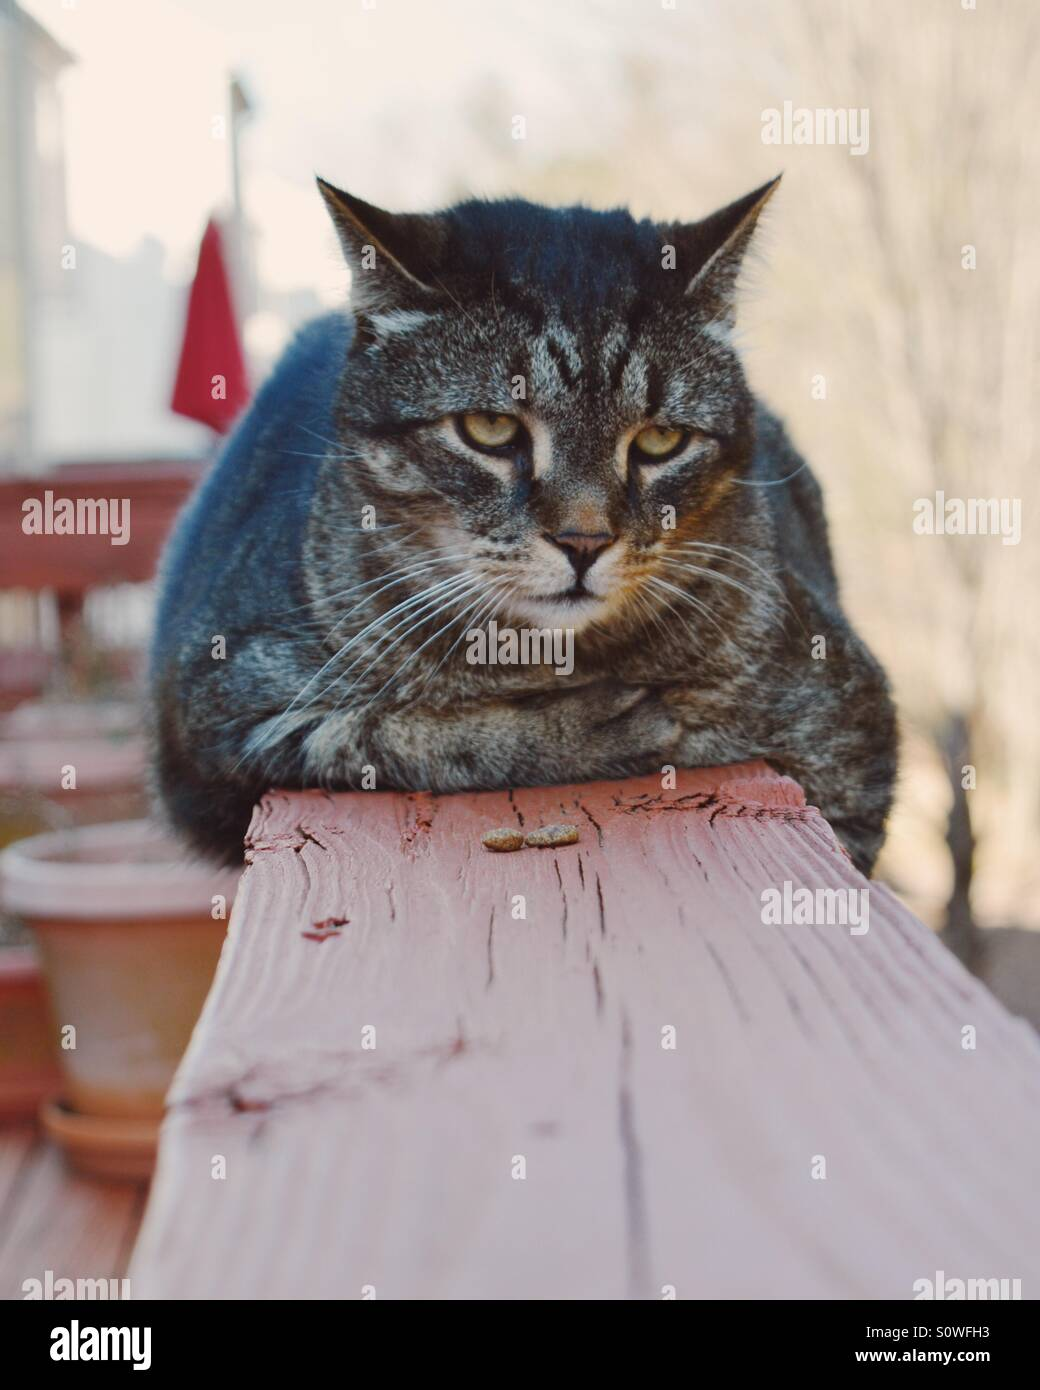 Cat on a porch egde - Stock Image